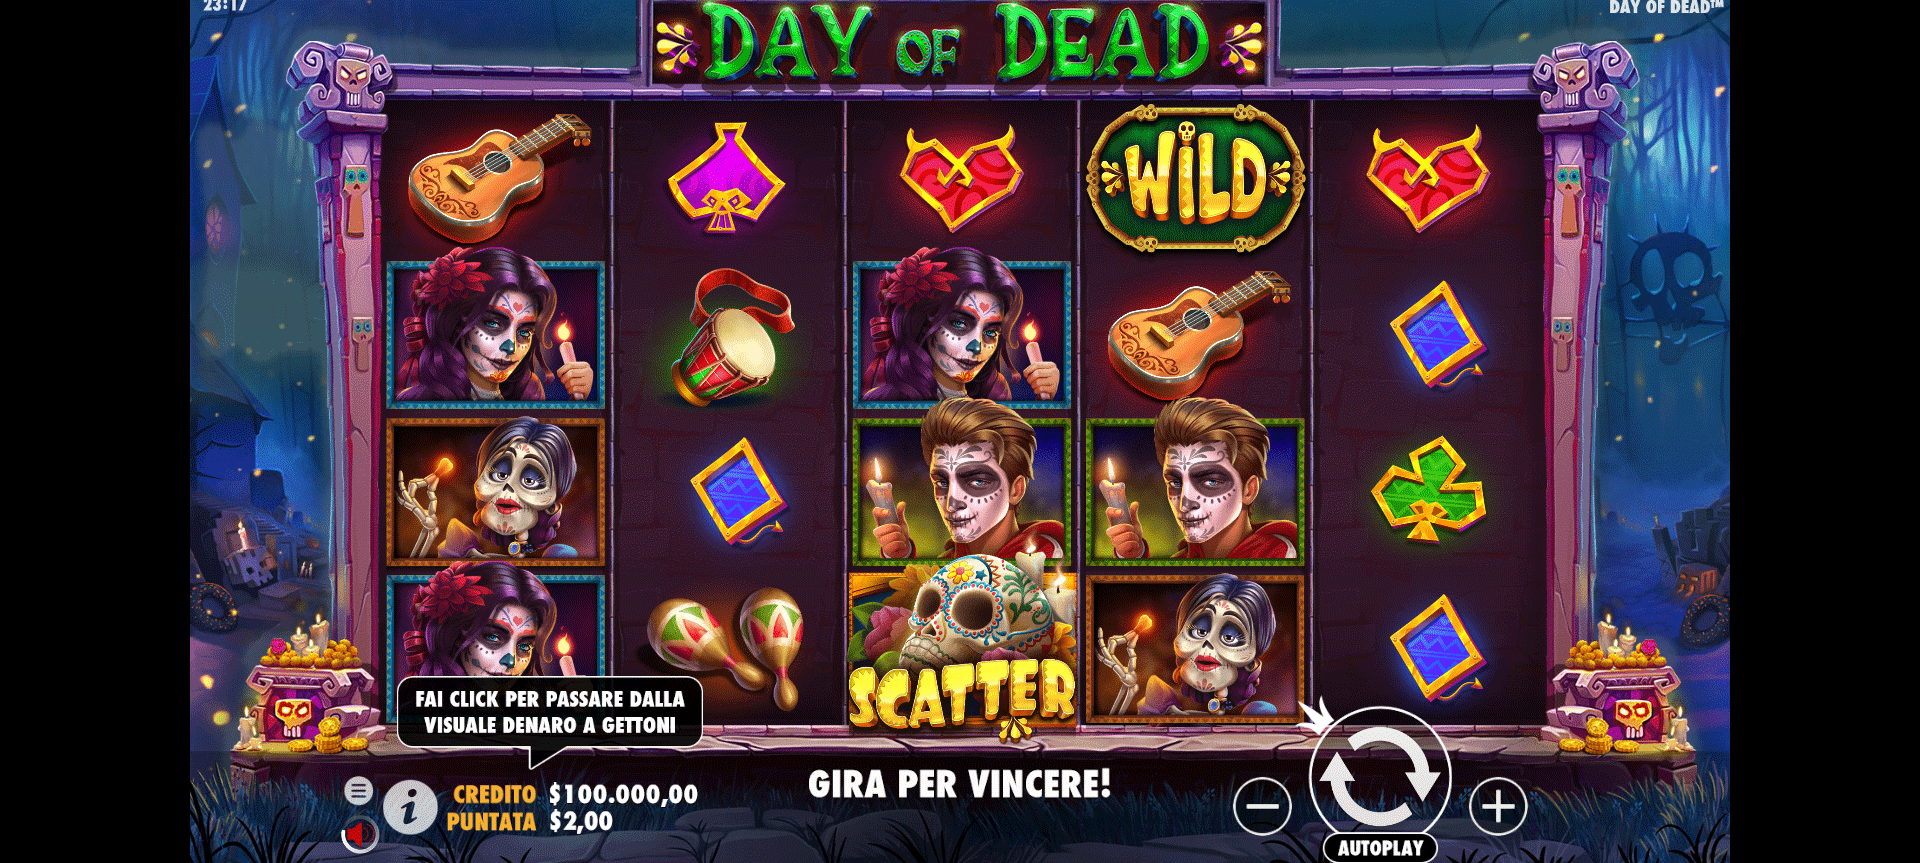 Slot Day of Dead